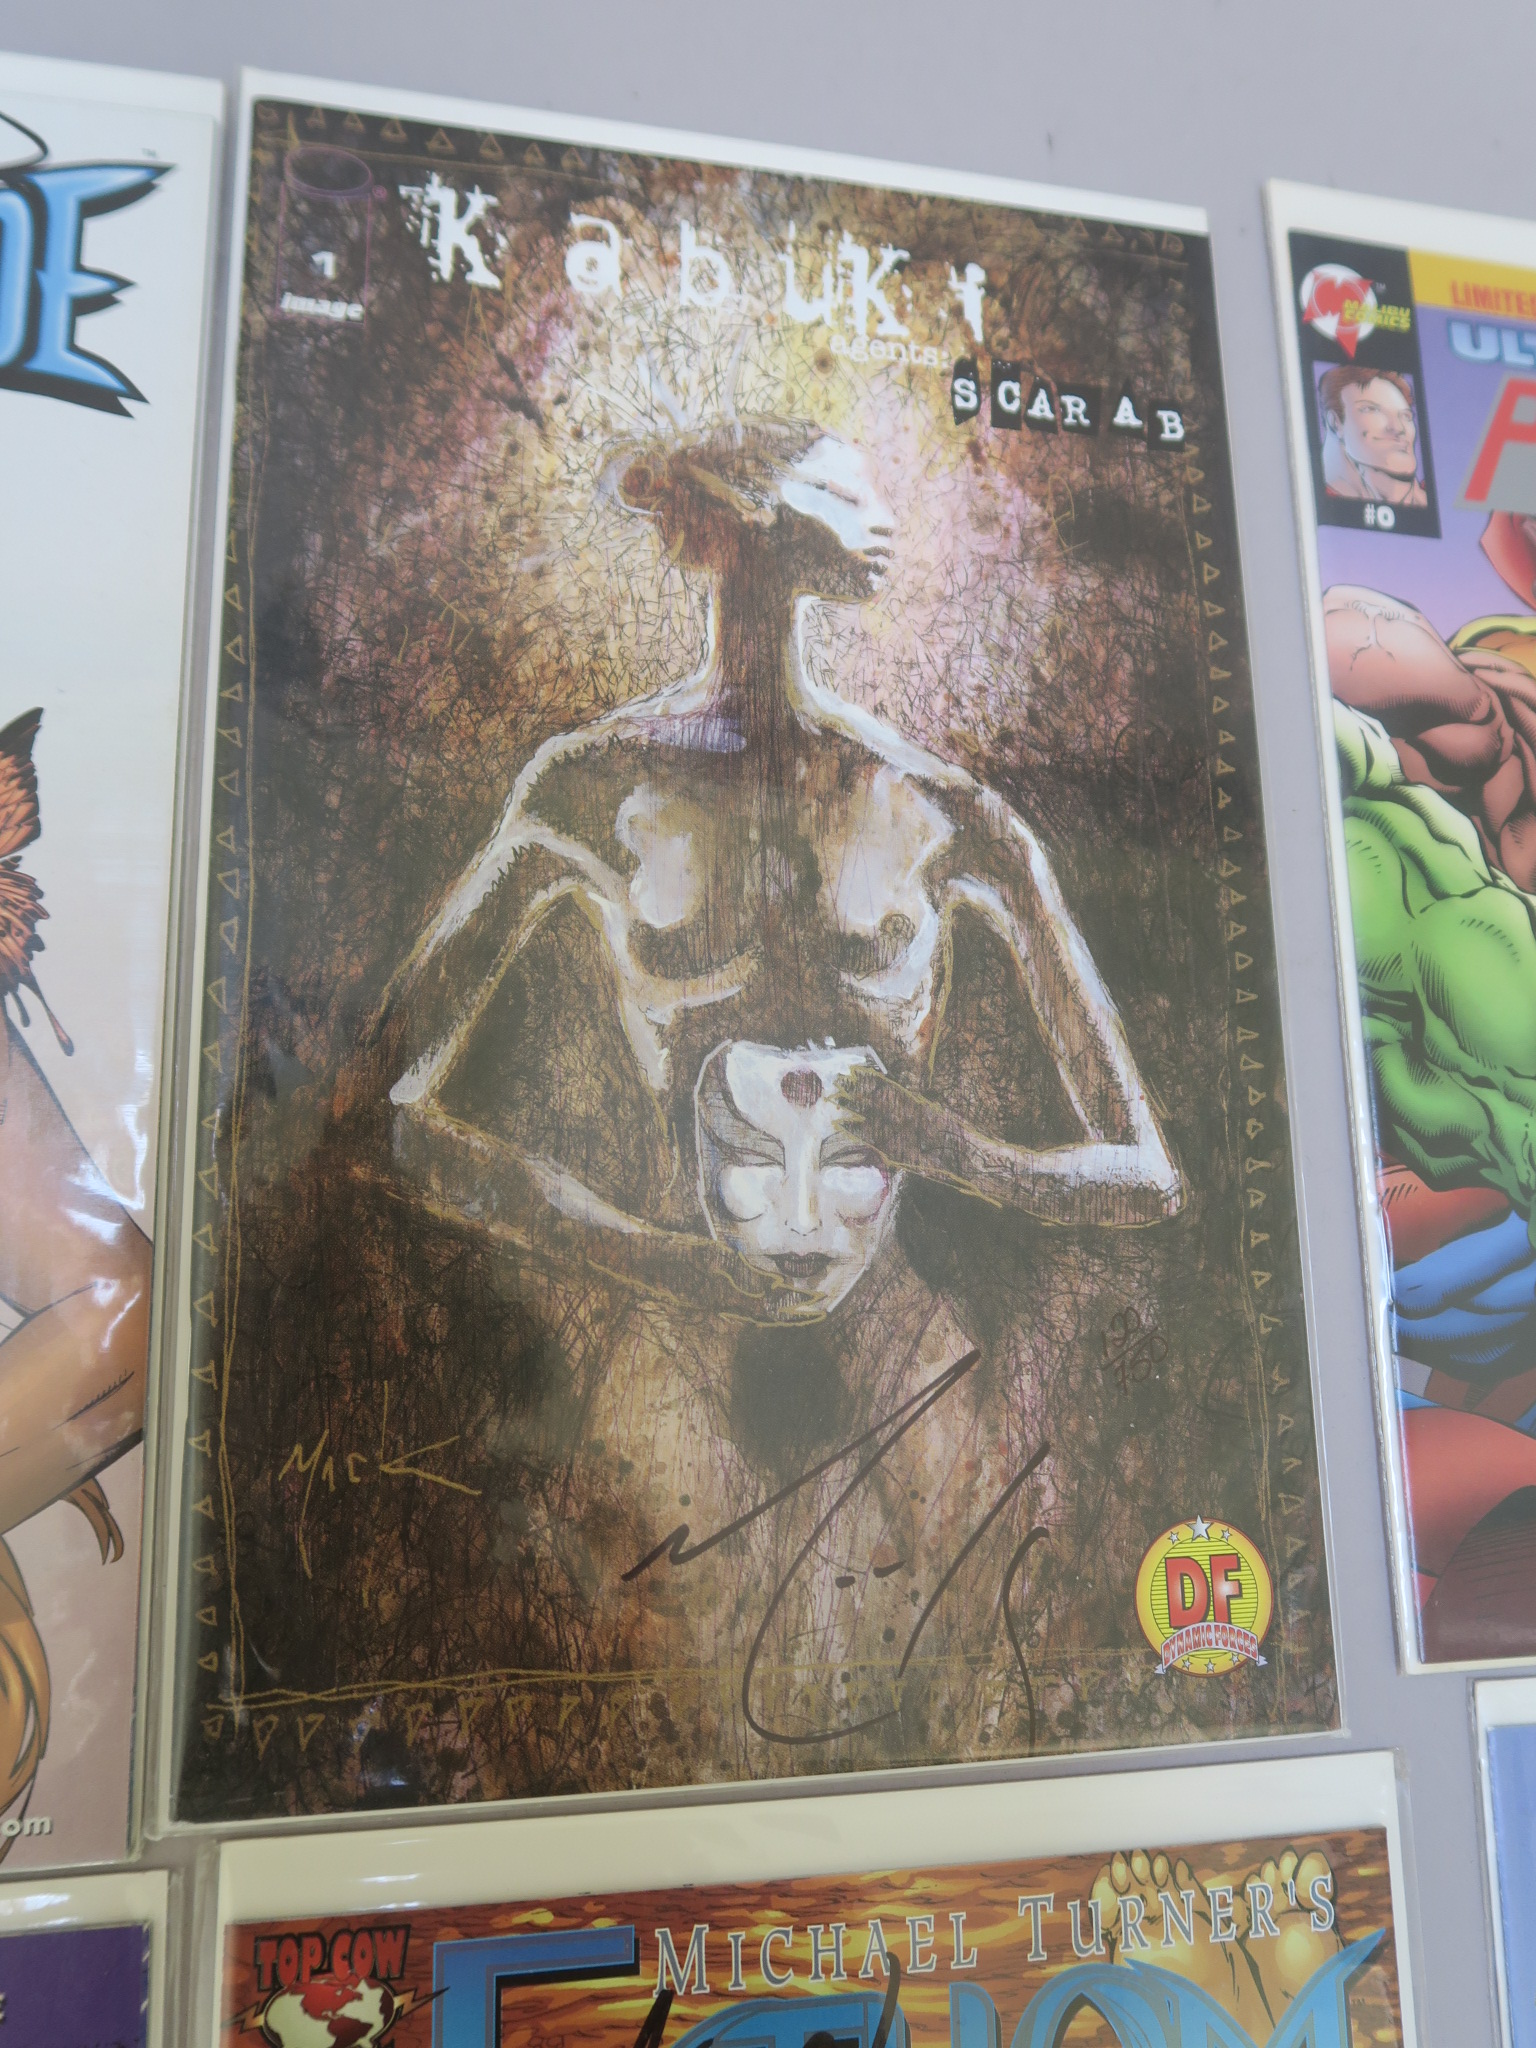 Lot 4 - 17 Signed comics including Cyberforce #25 (signed by Brian Holguin, David Finch, Anthony Chun and